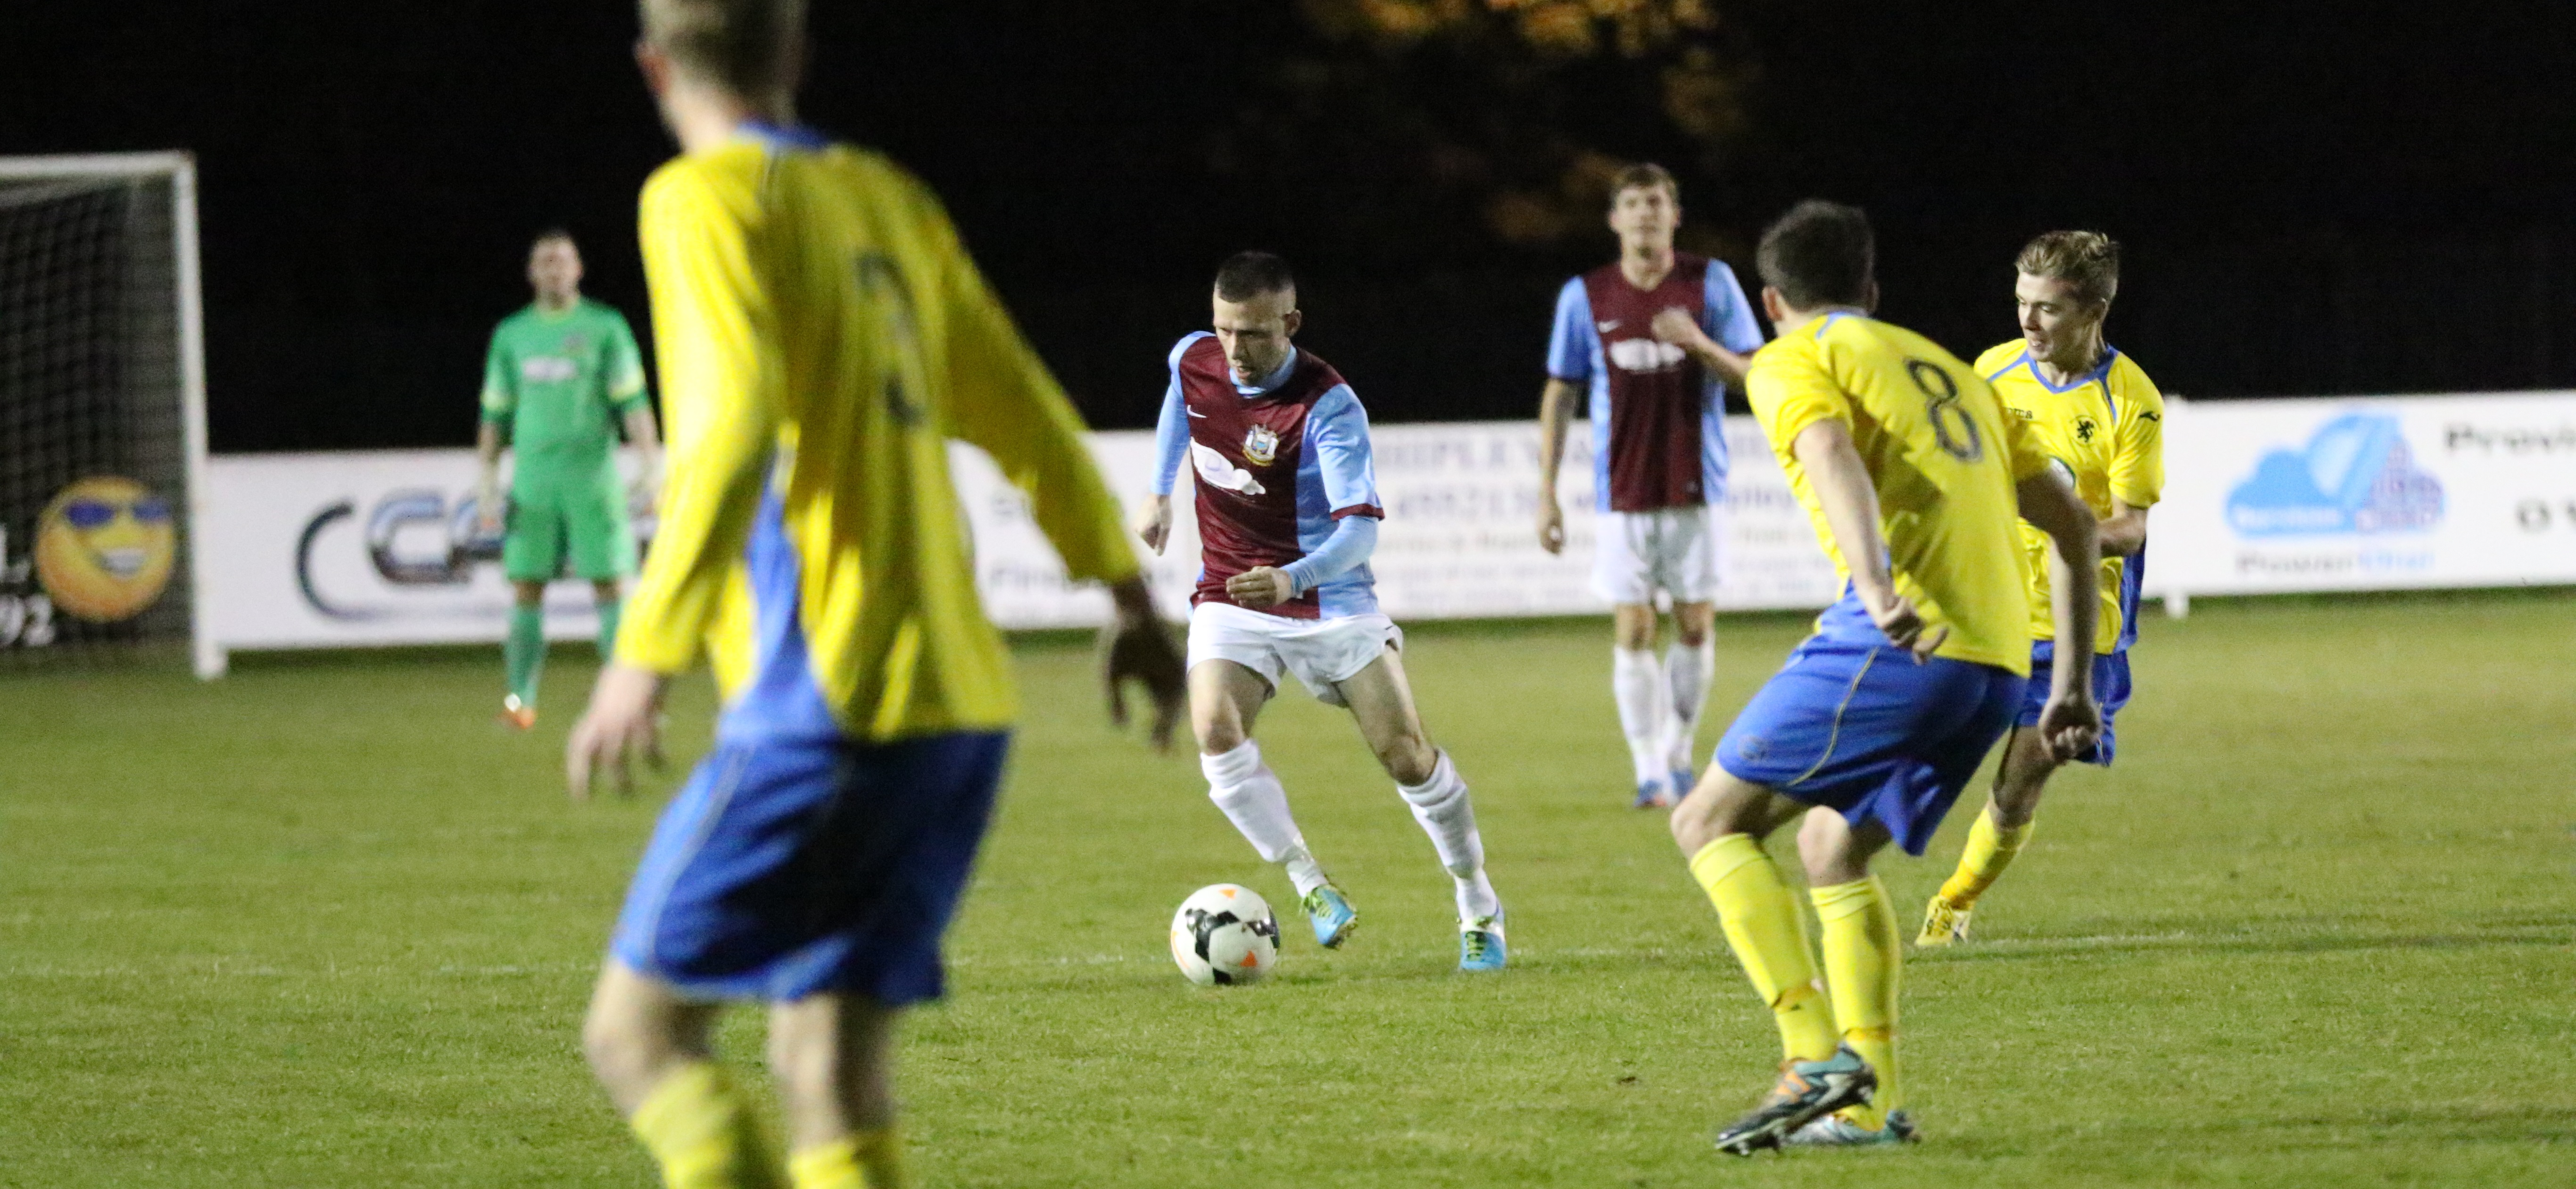 HIGHLIGHTS: South Shields 3-0 Billingham Synthonia